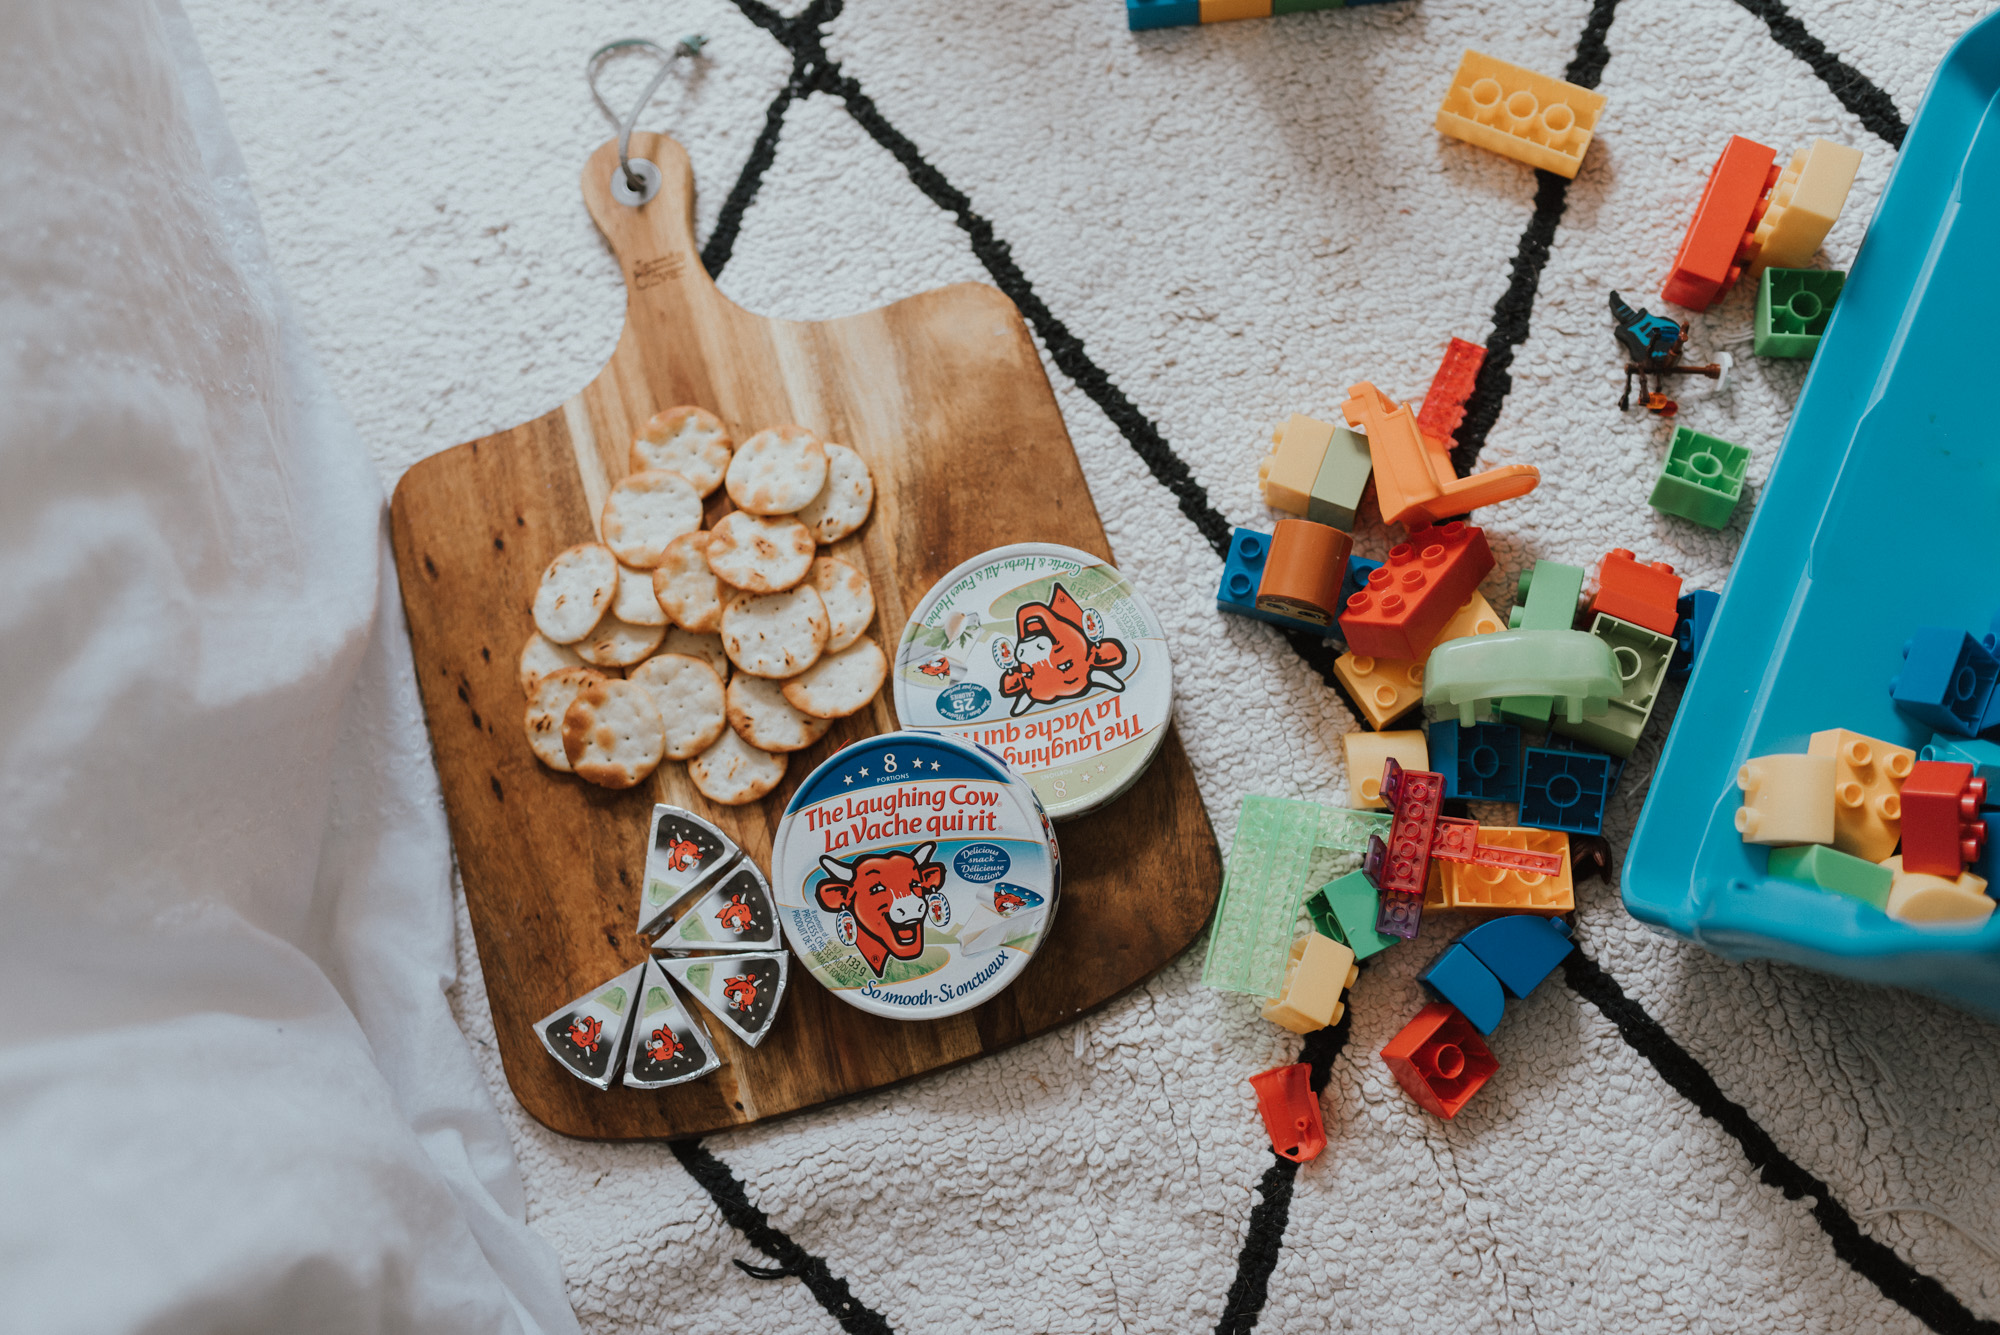 The Wild Decoelis | Laughing Cow, The Perfect snack for Playtime | laughing cow and lego